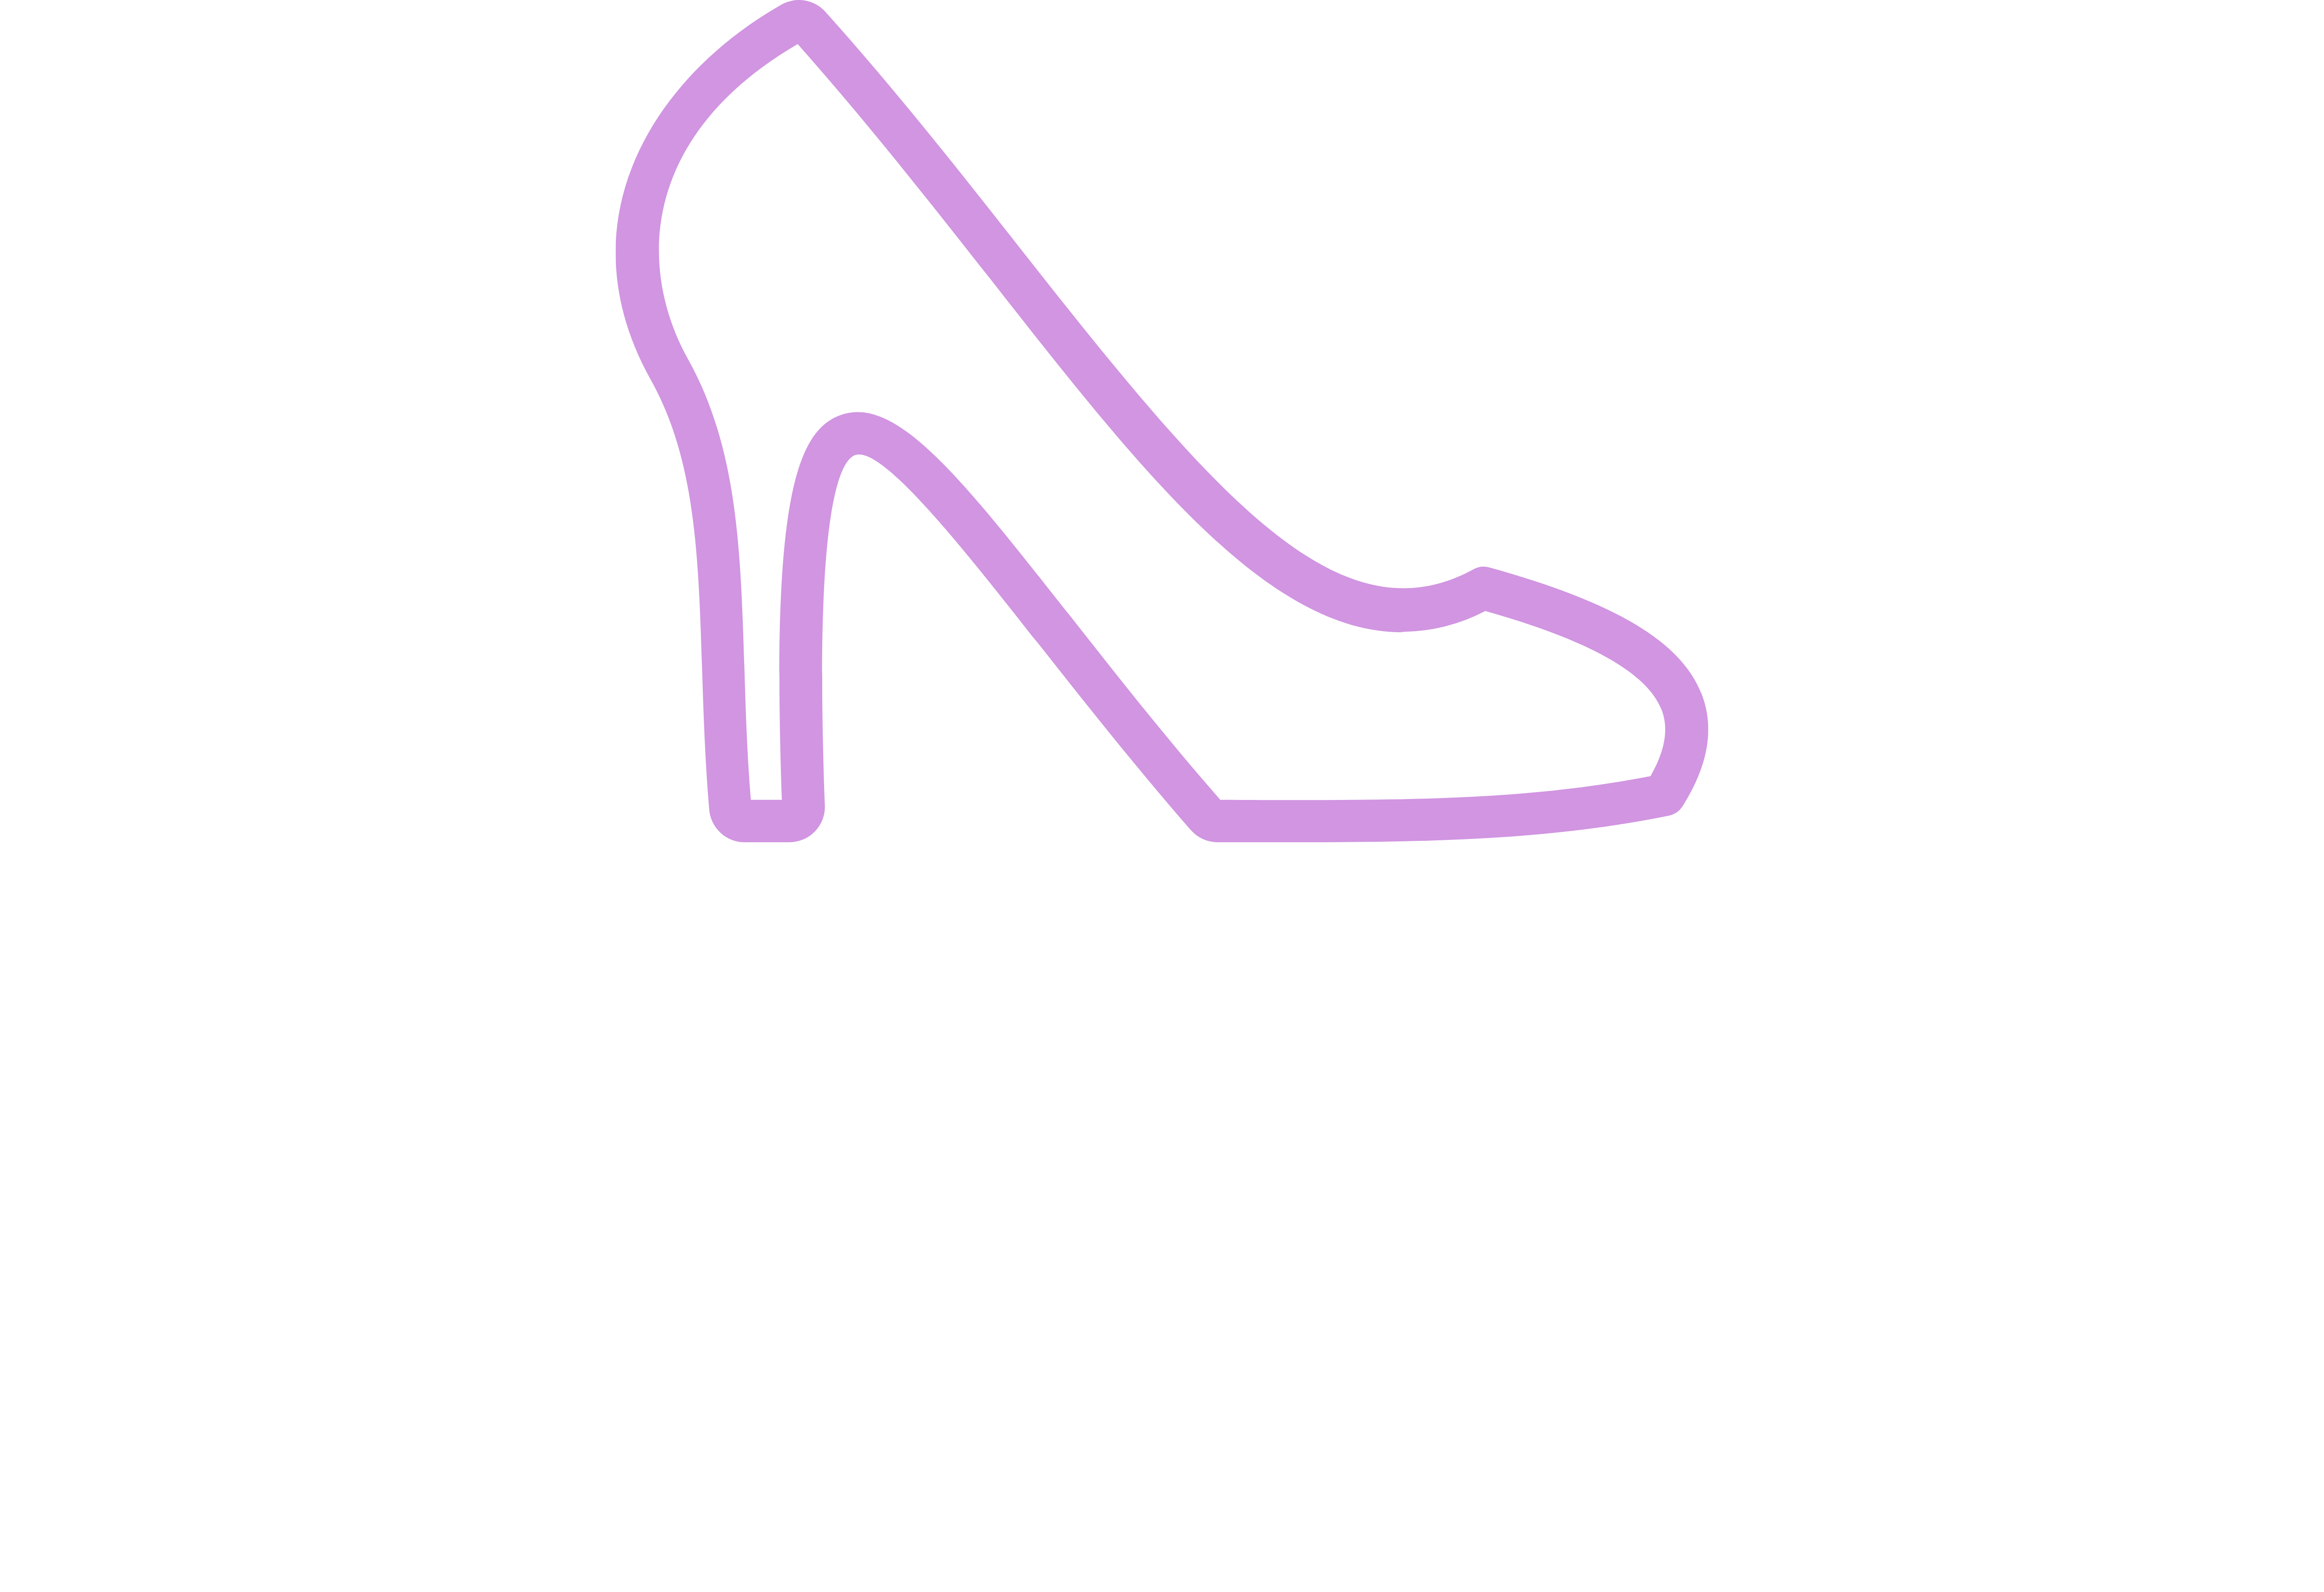 Low Heel No Heel